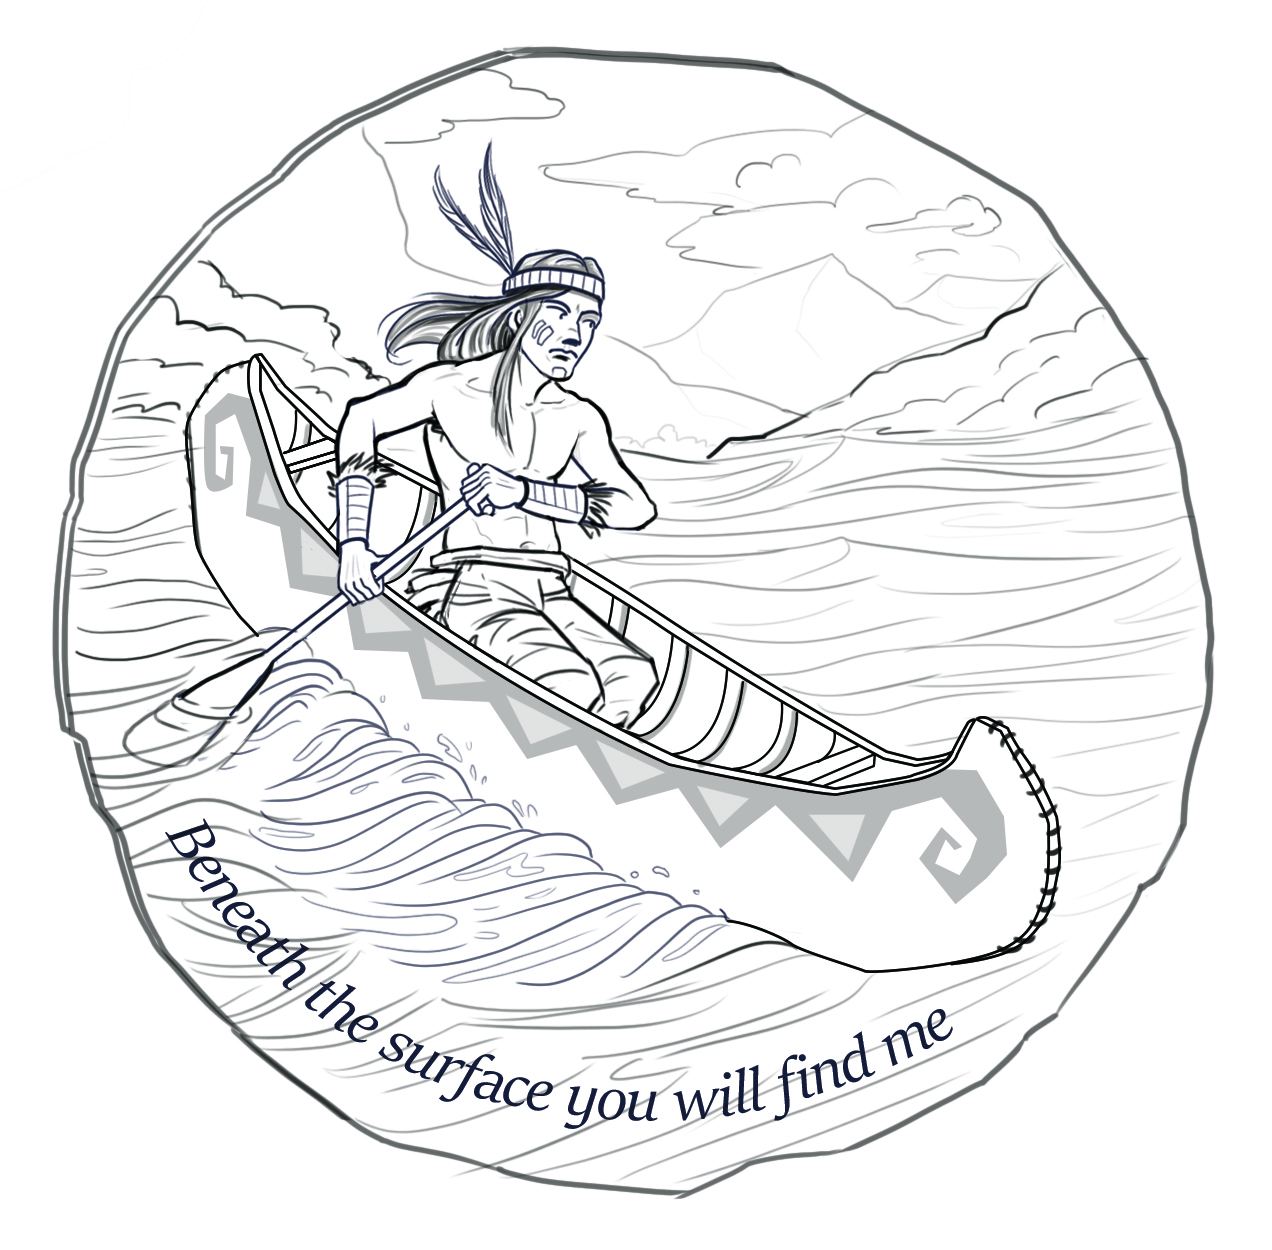 CANOE drawing Symbol.jpg